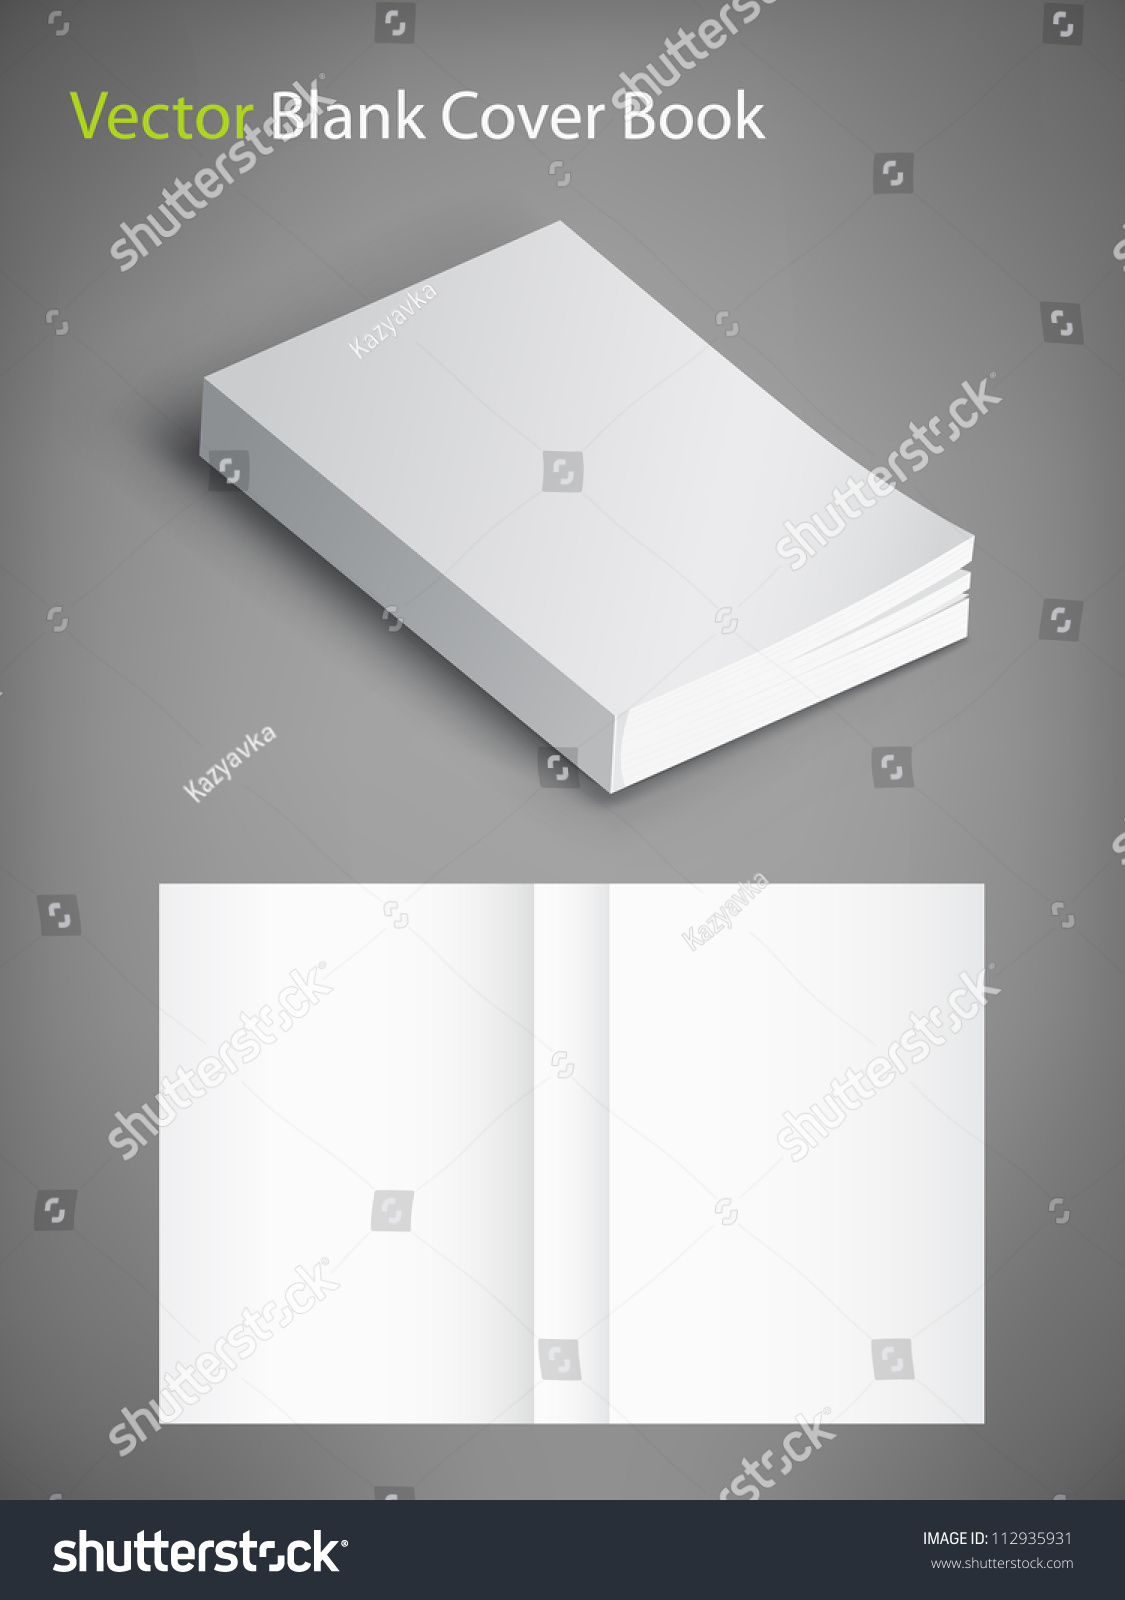 Blank Book Cover Vector Illustration Free : Blank book cover vector illustration template for your